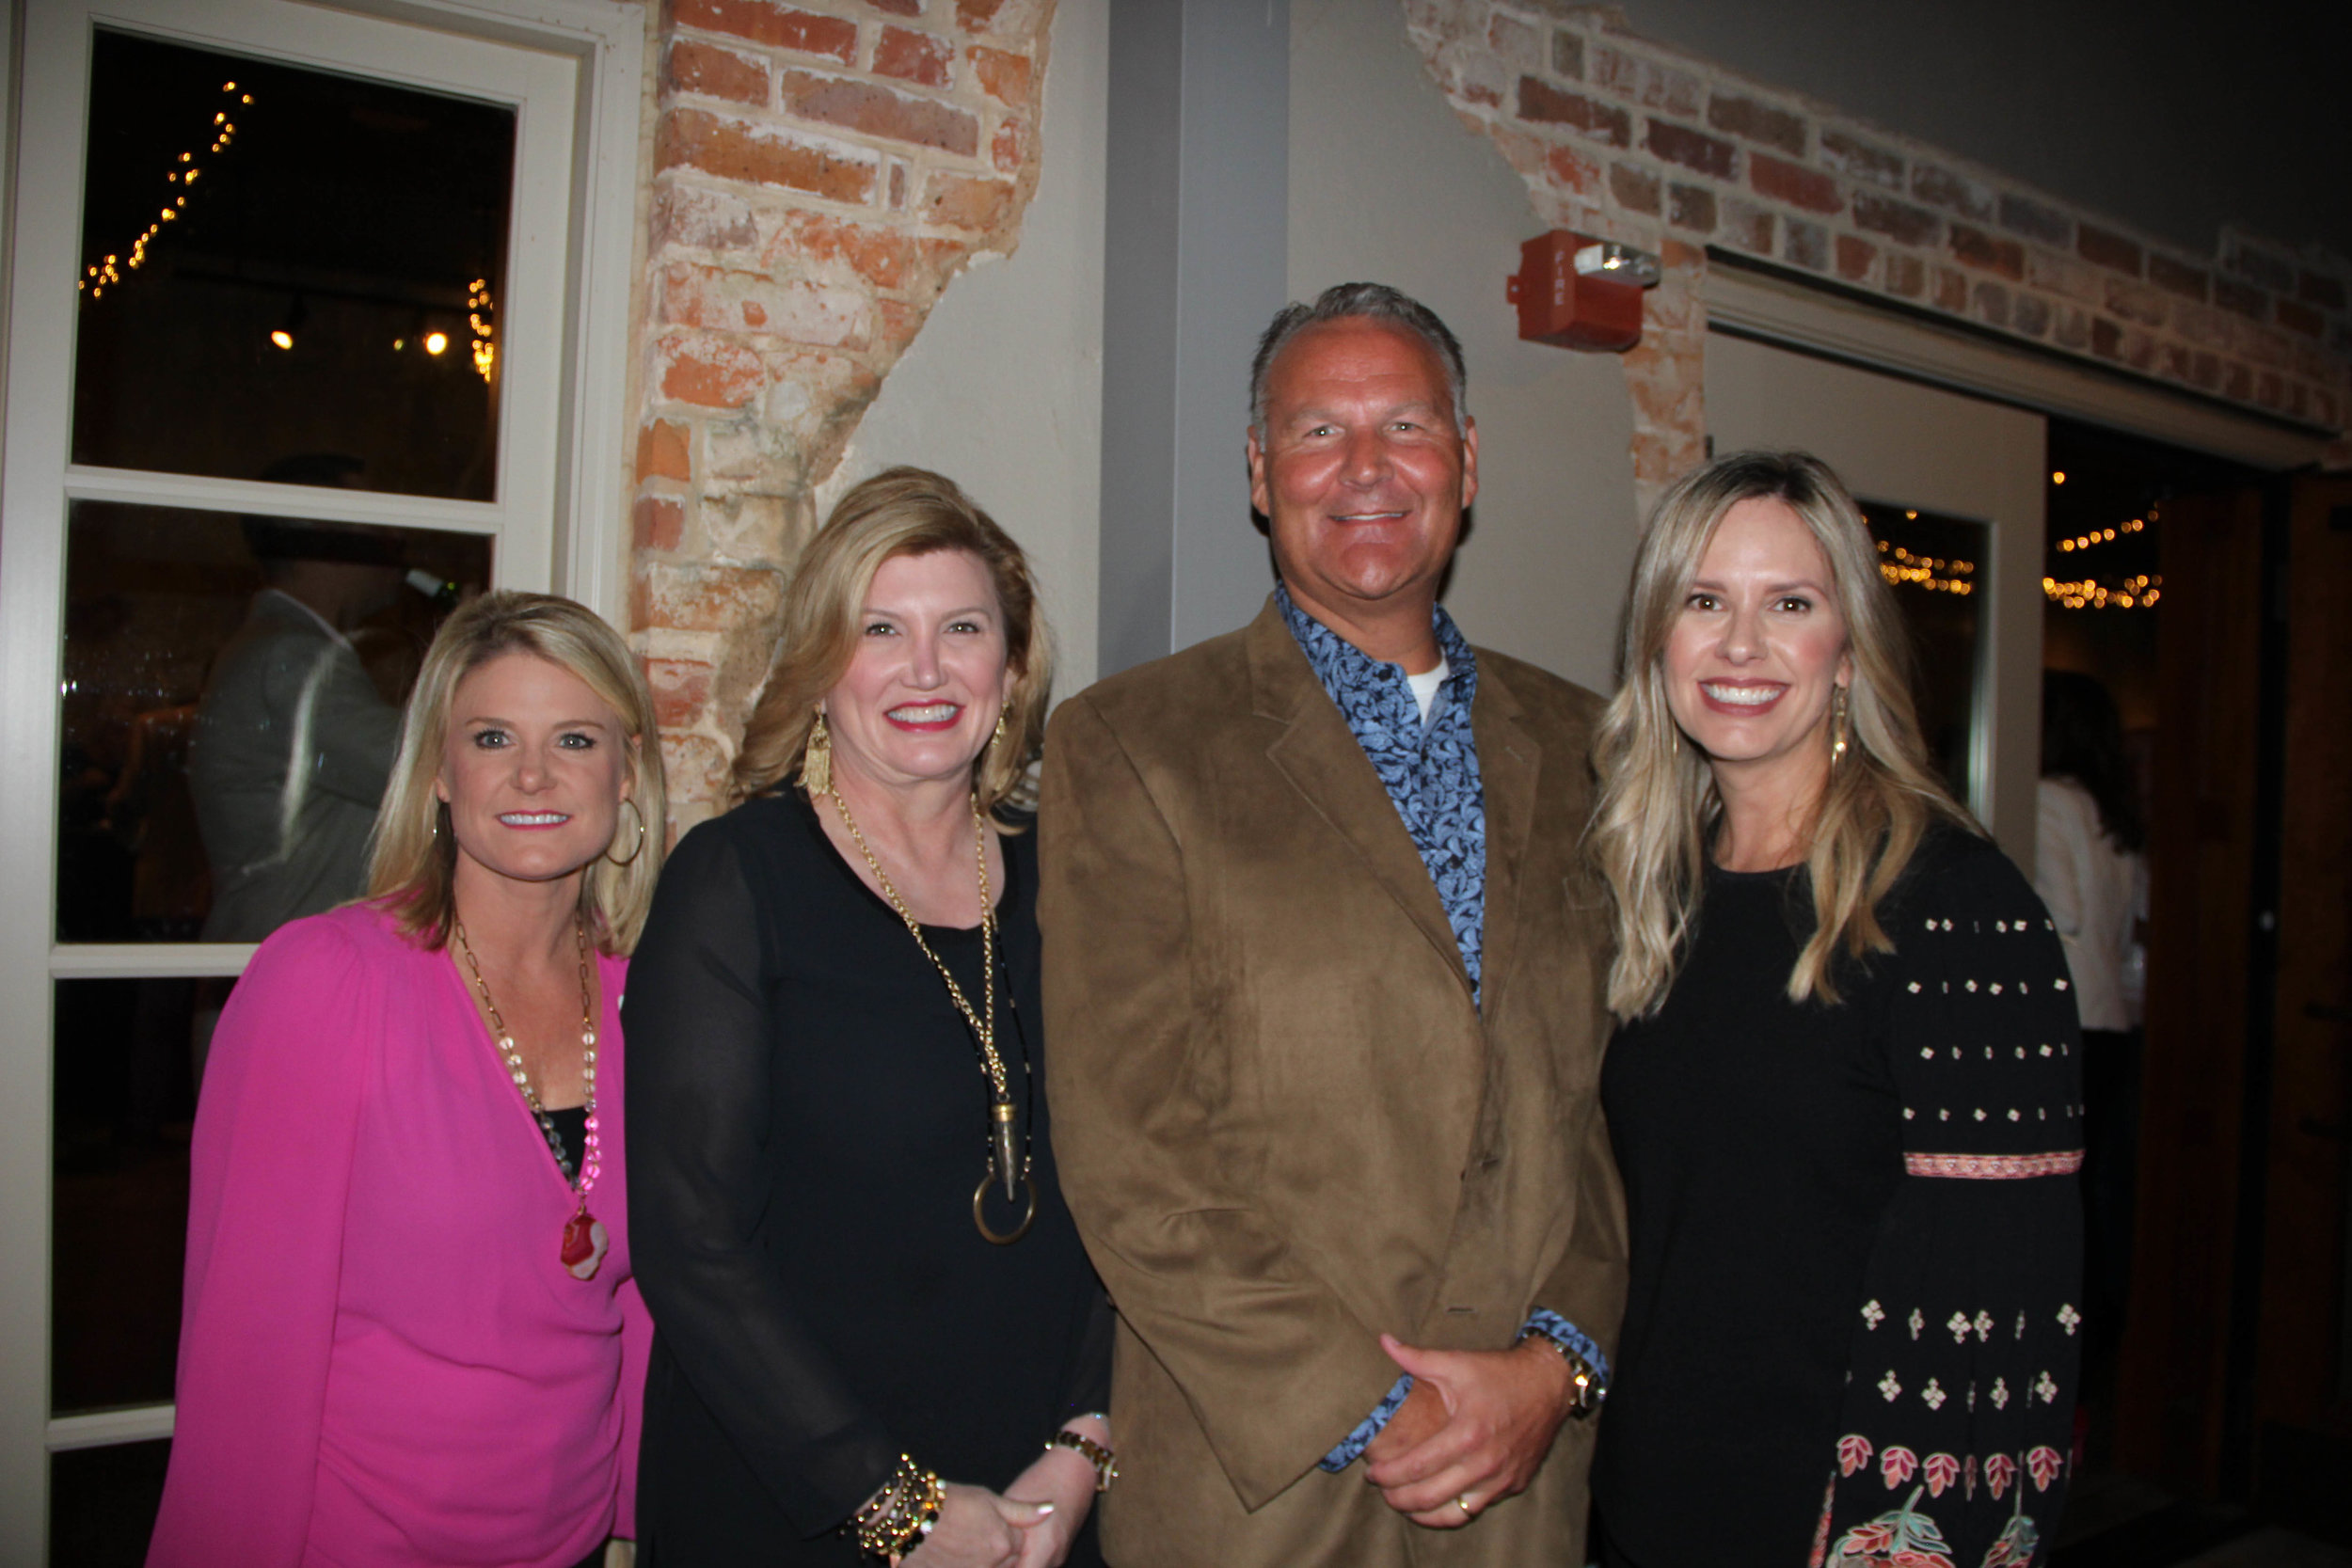 Mendy Warner, Cindy and Dr. Matt Young and Brooke Marshall